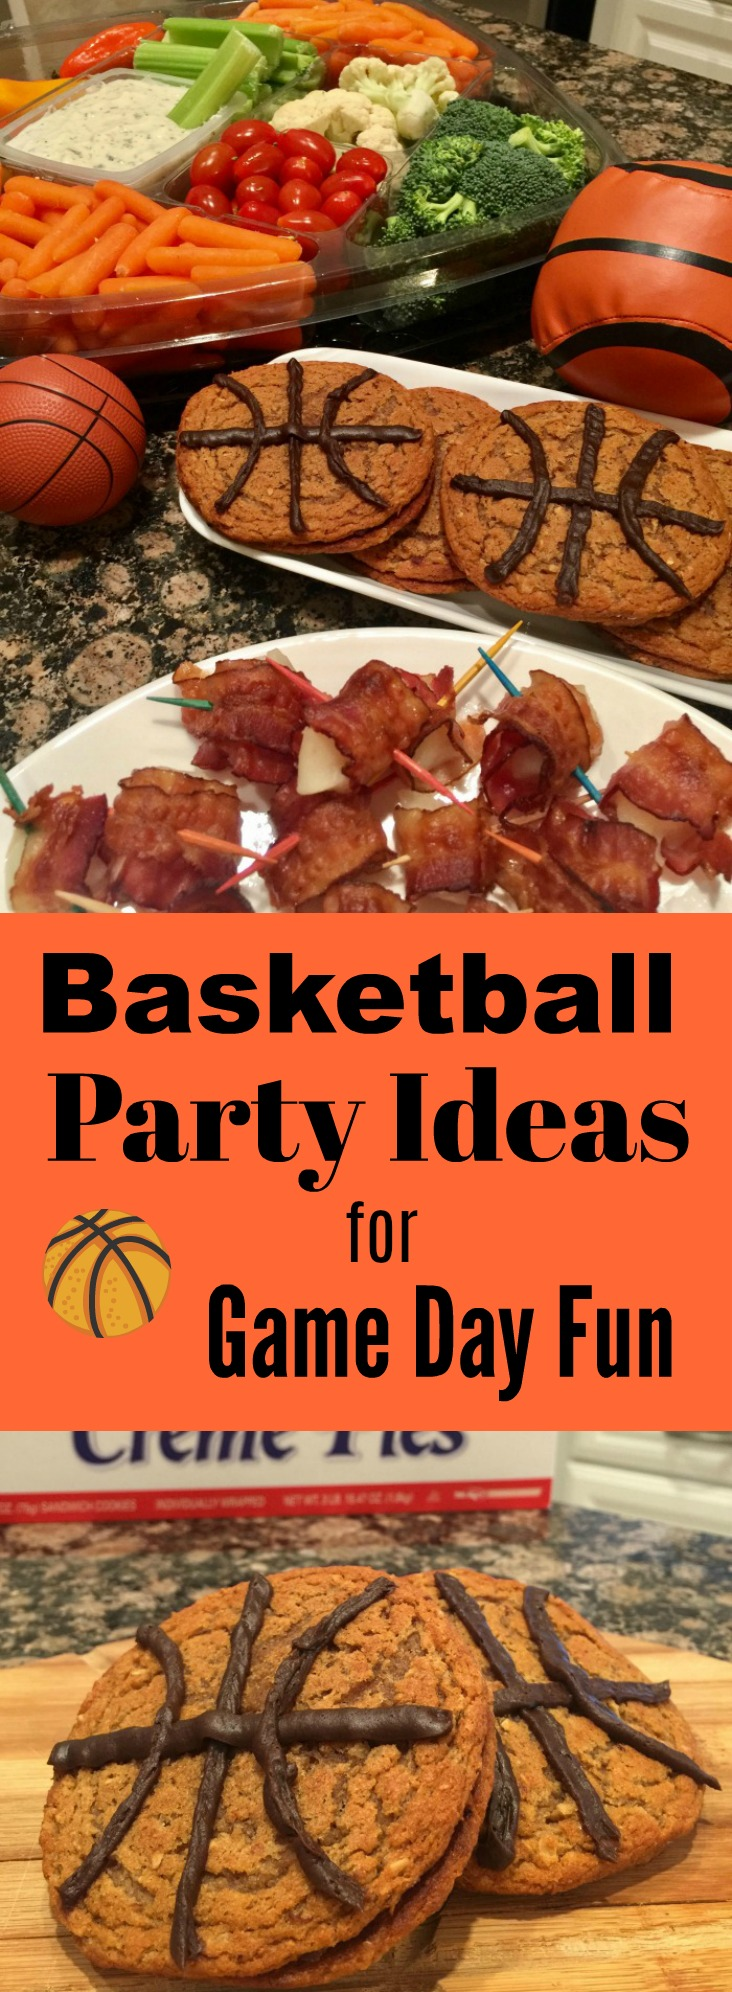 Basketball party ideas for game day fun - tourney time! From food to crafts, the best party ideas!